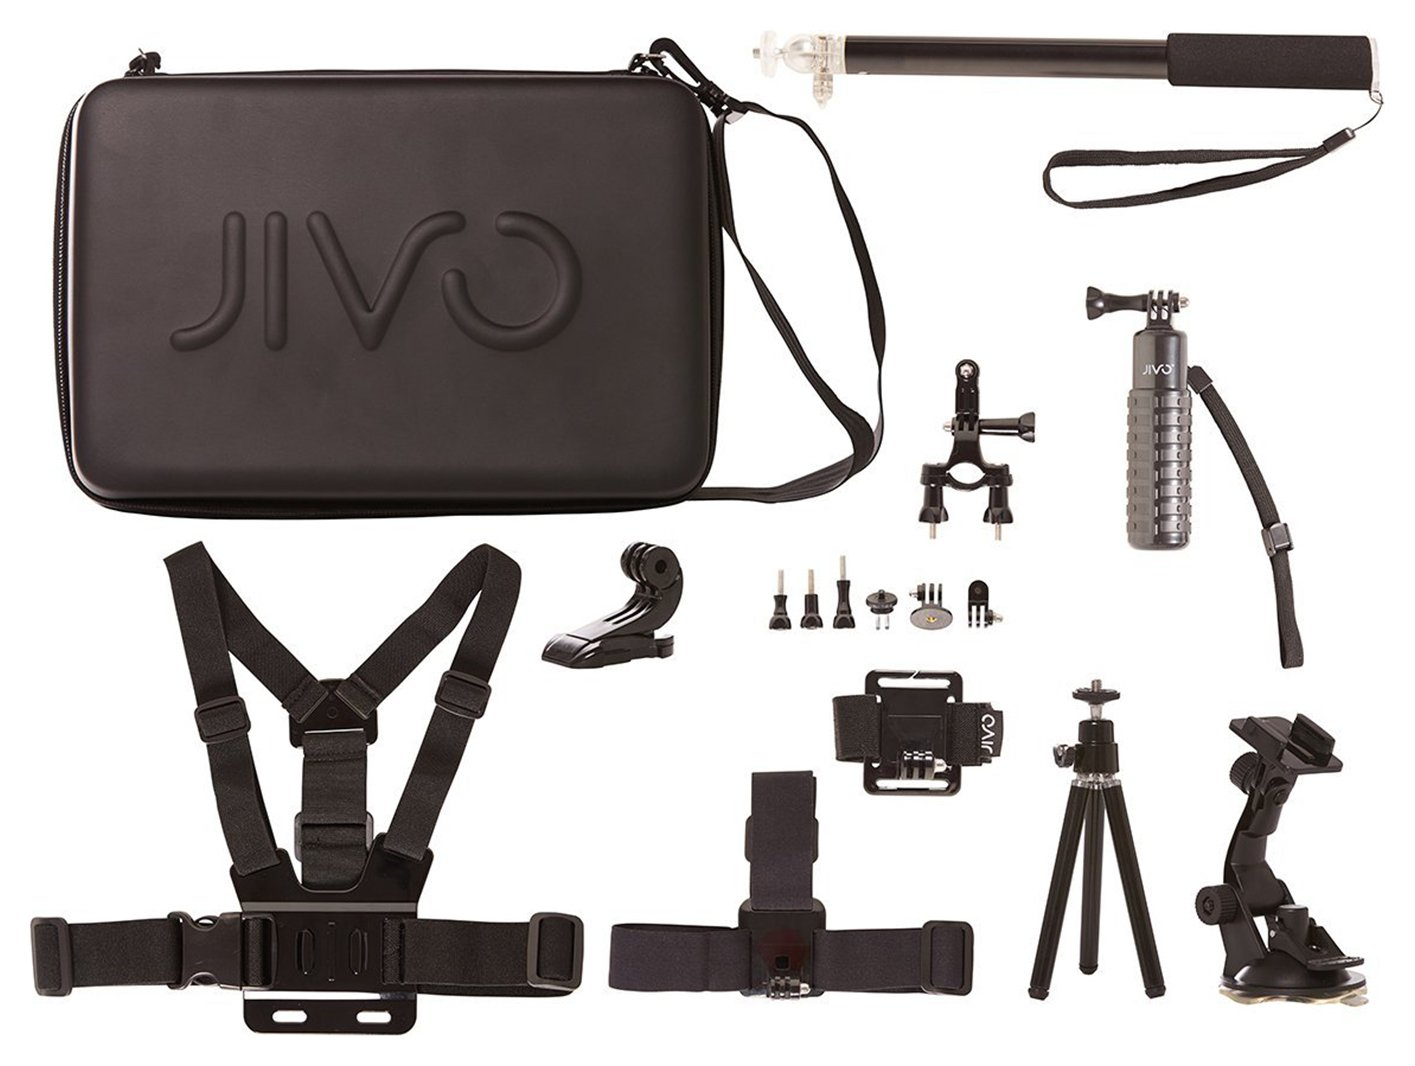 Jivo Jivo GoGear 11 In 1 Accessory Kit For GoPro and Action Cams